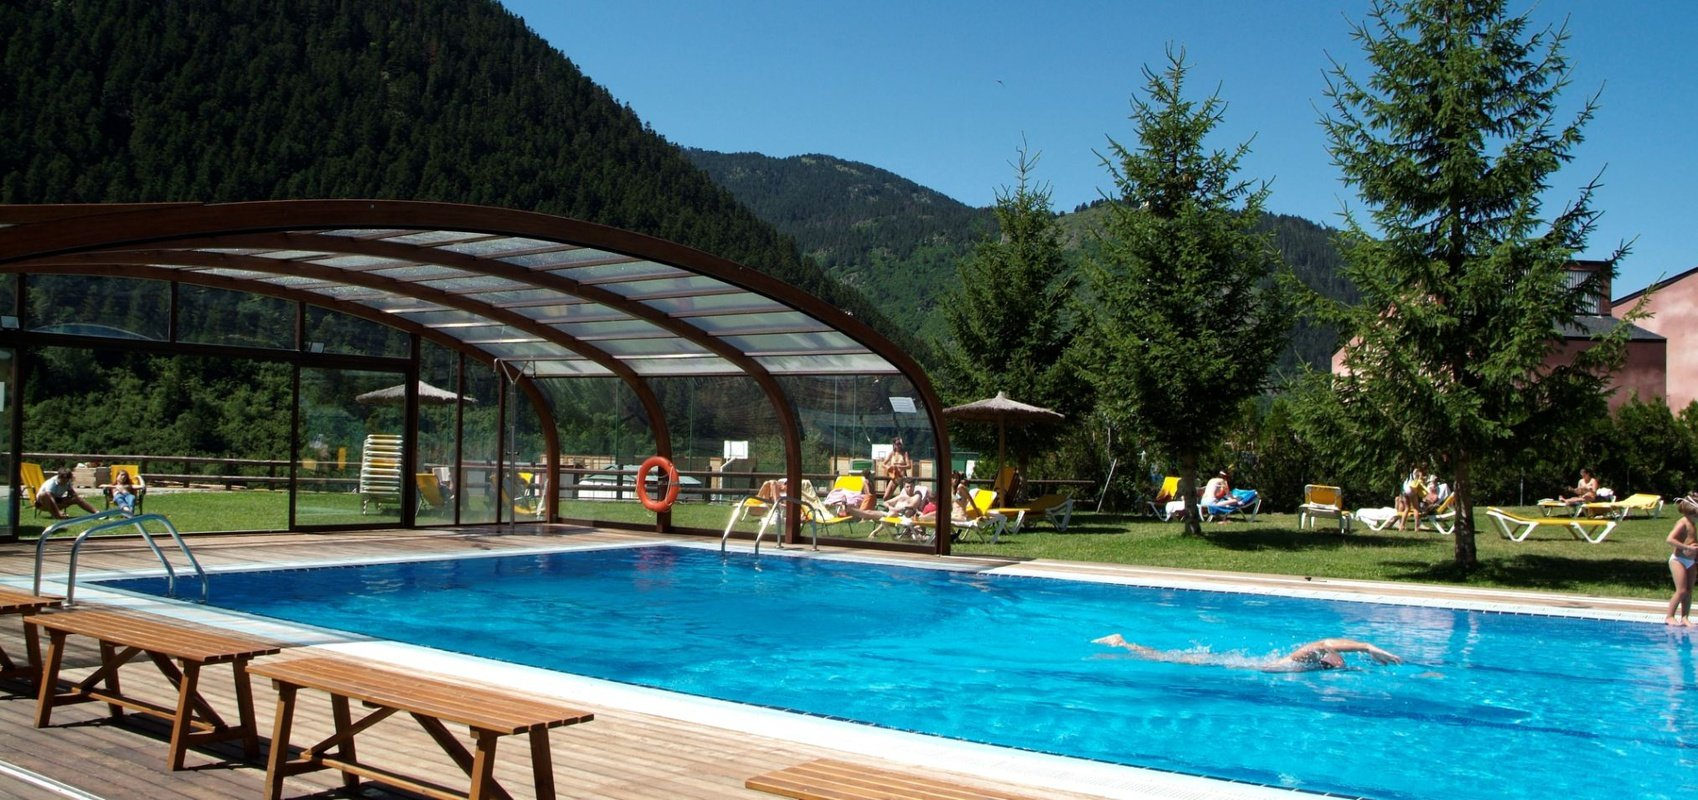 Excellent services for you montarto hotel baqueira beret